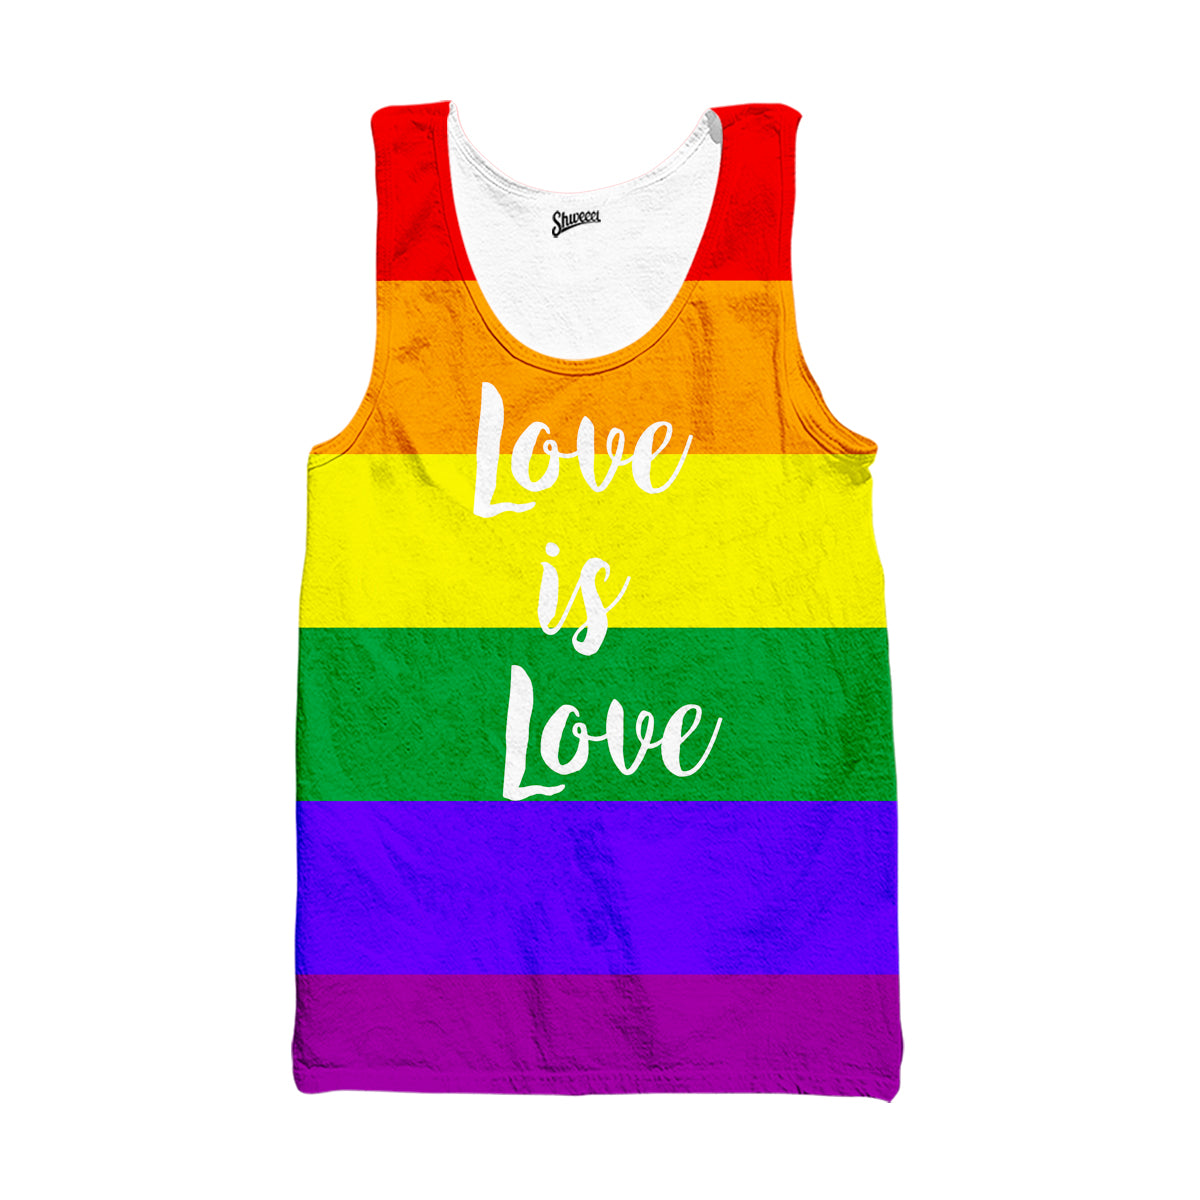 Love is Love Tank top - Shweeet